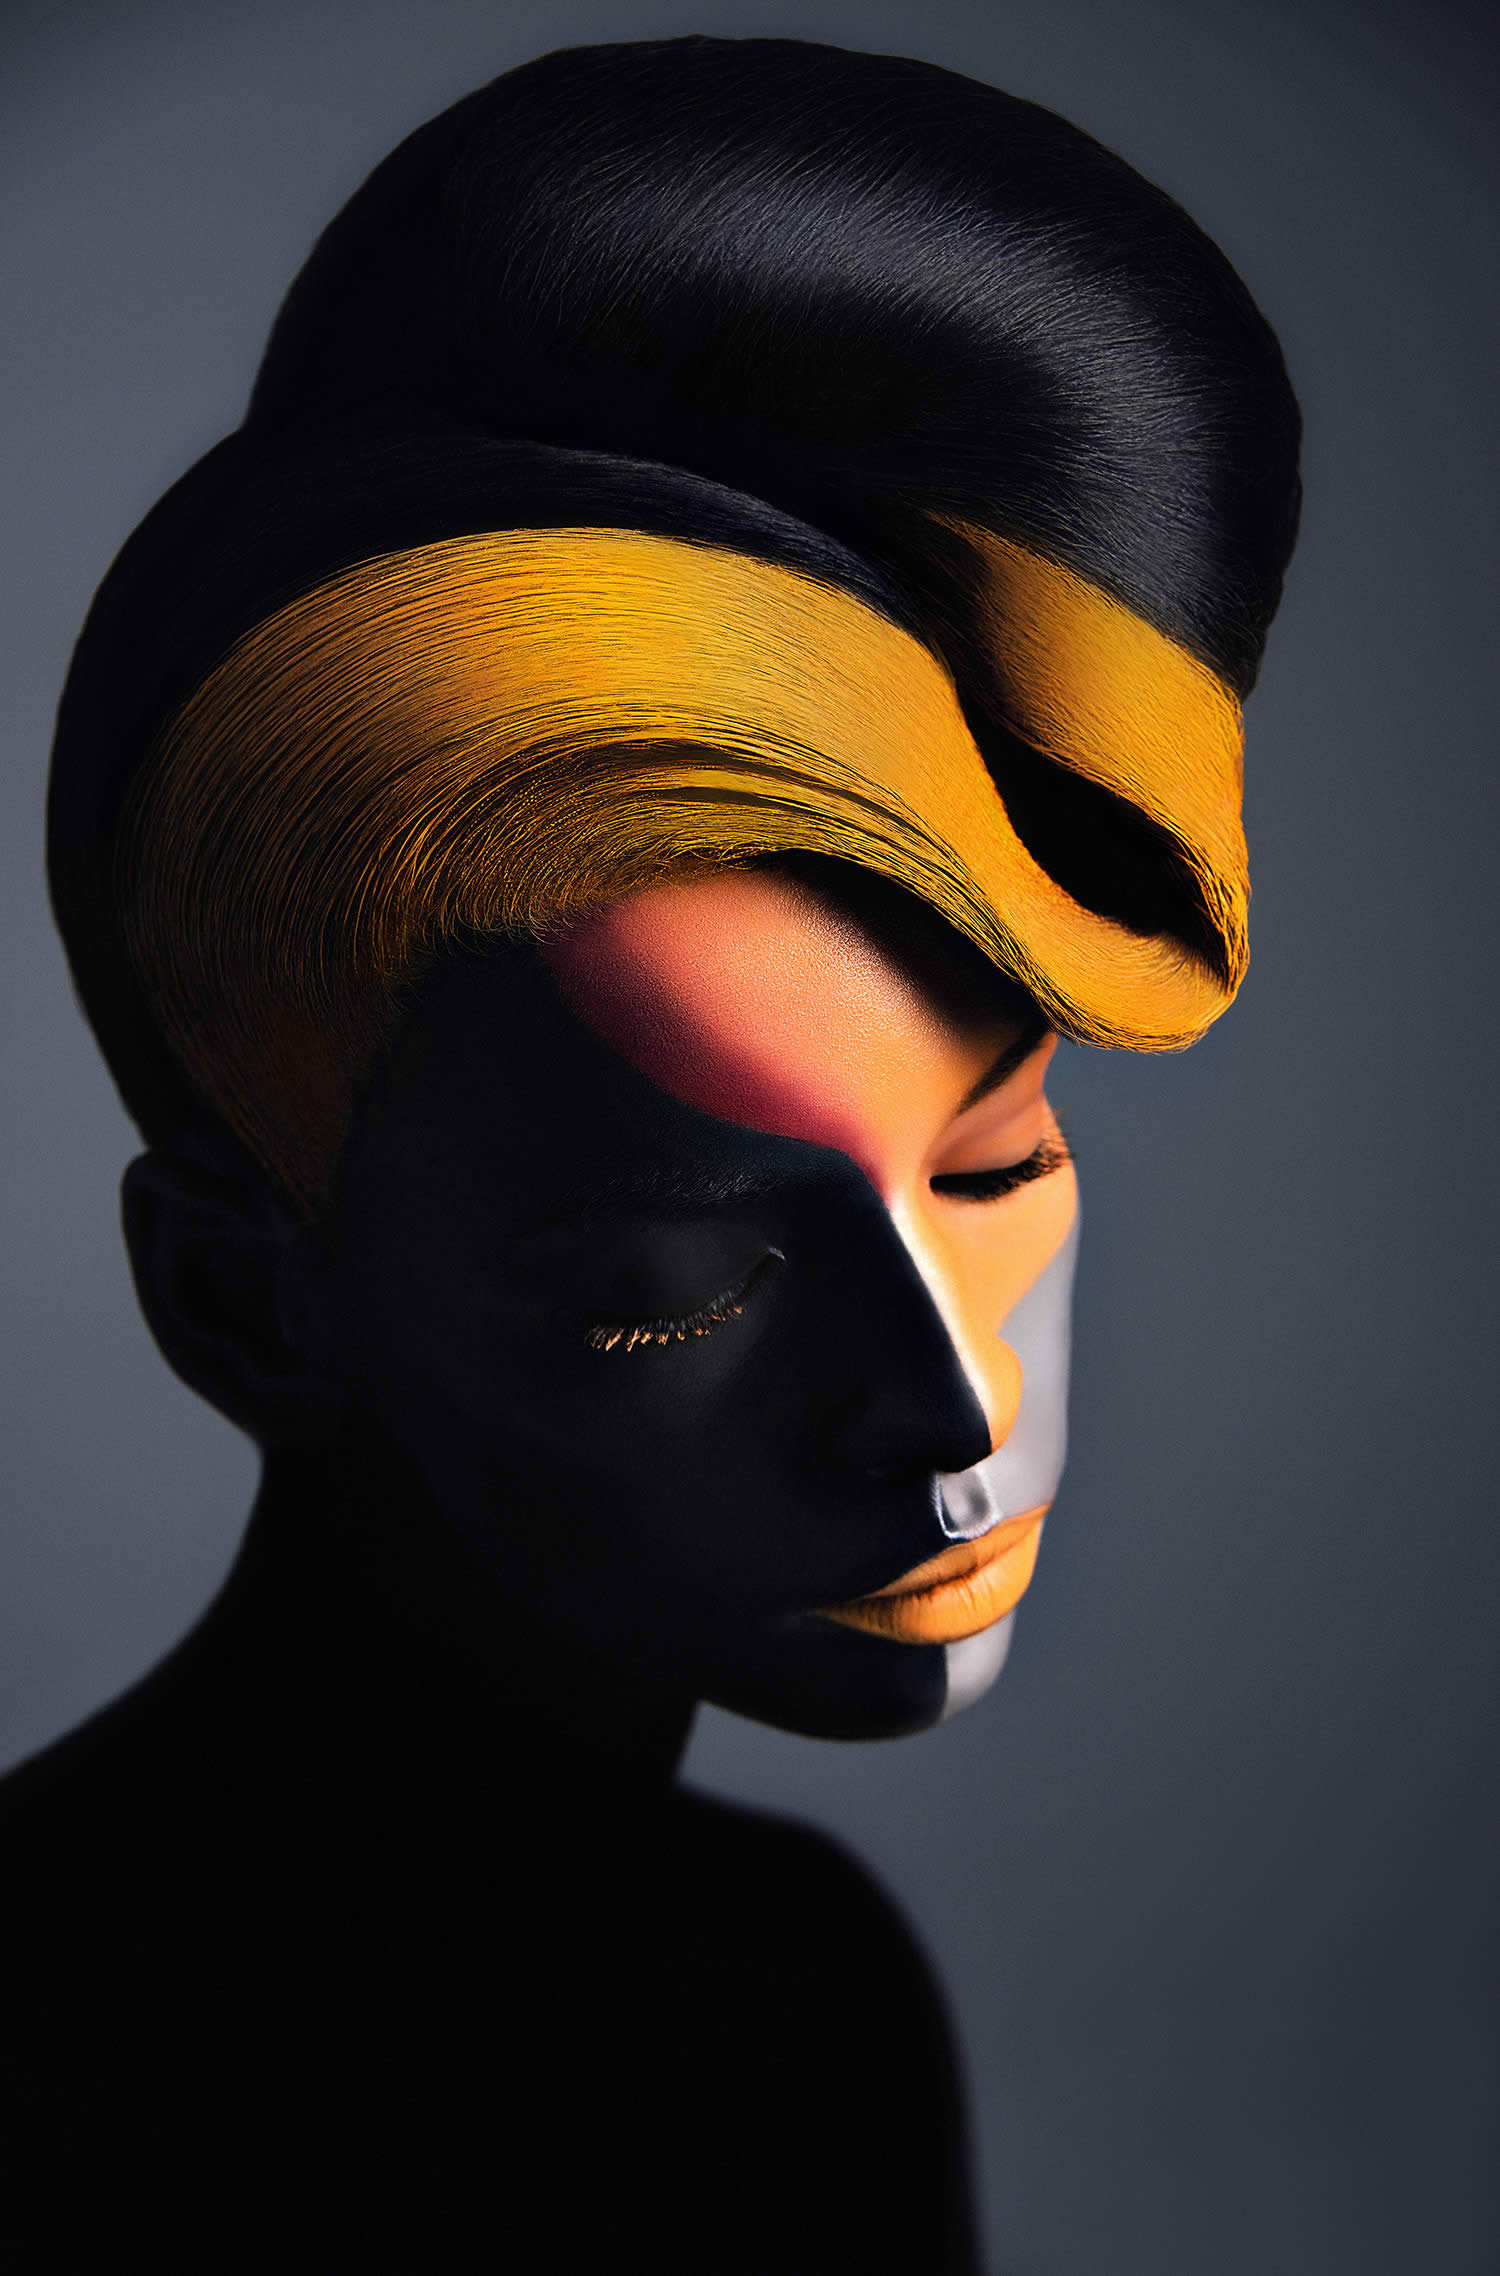 black woman with painted face and yellow curlcue hair by Azaryan Veronica